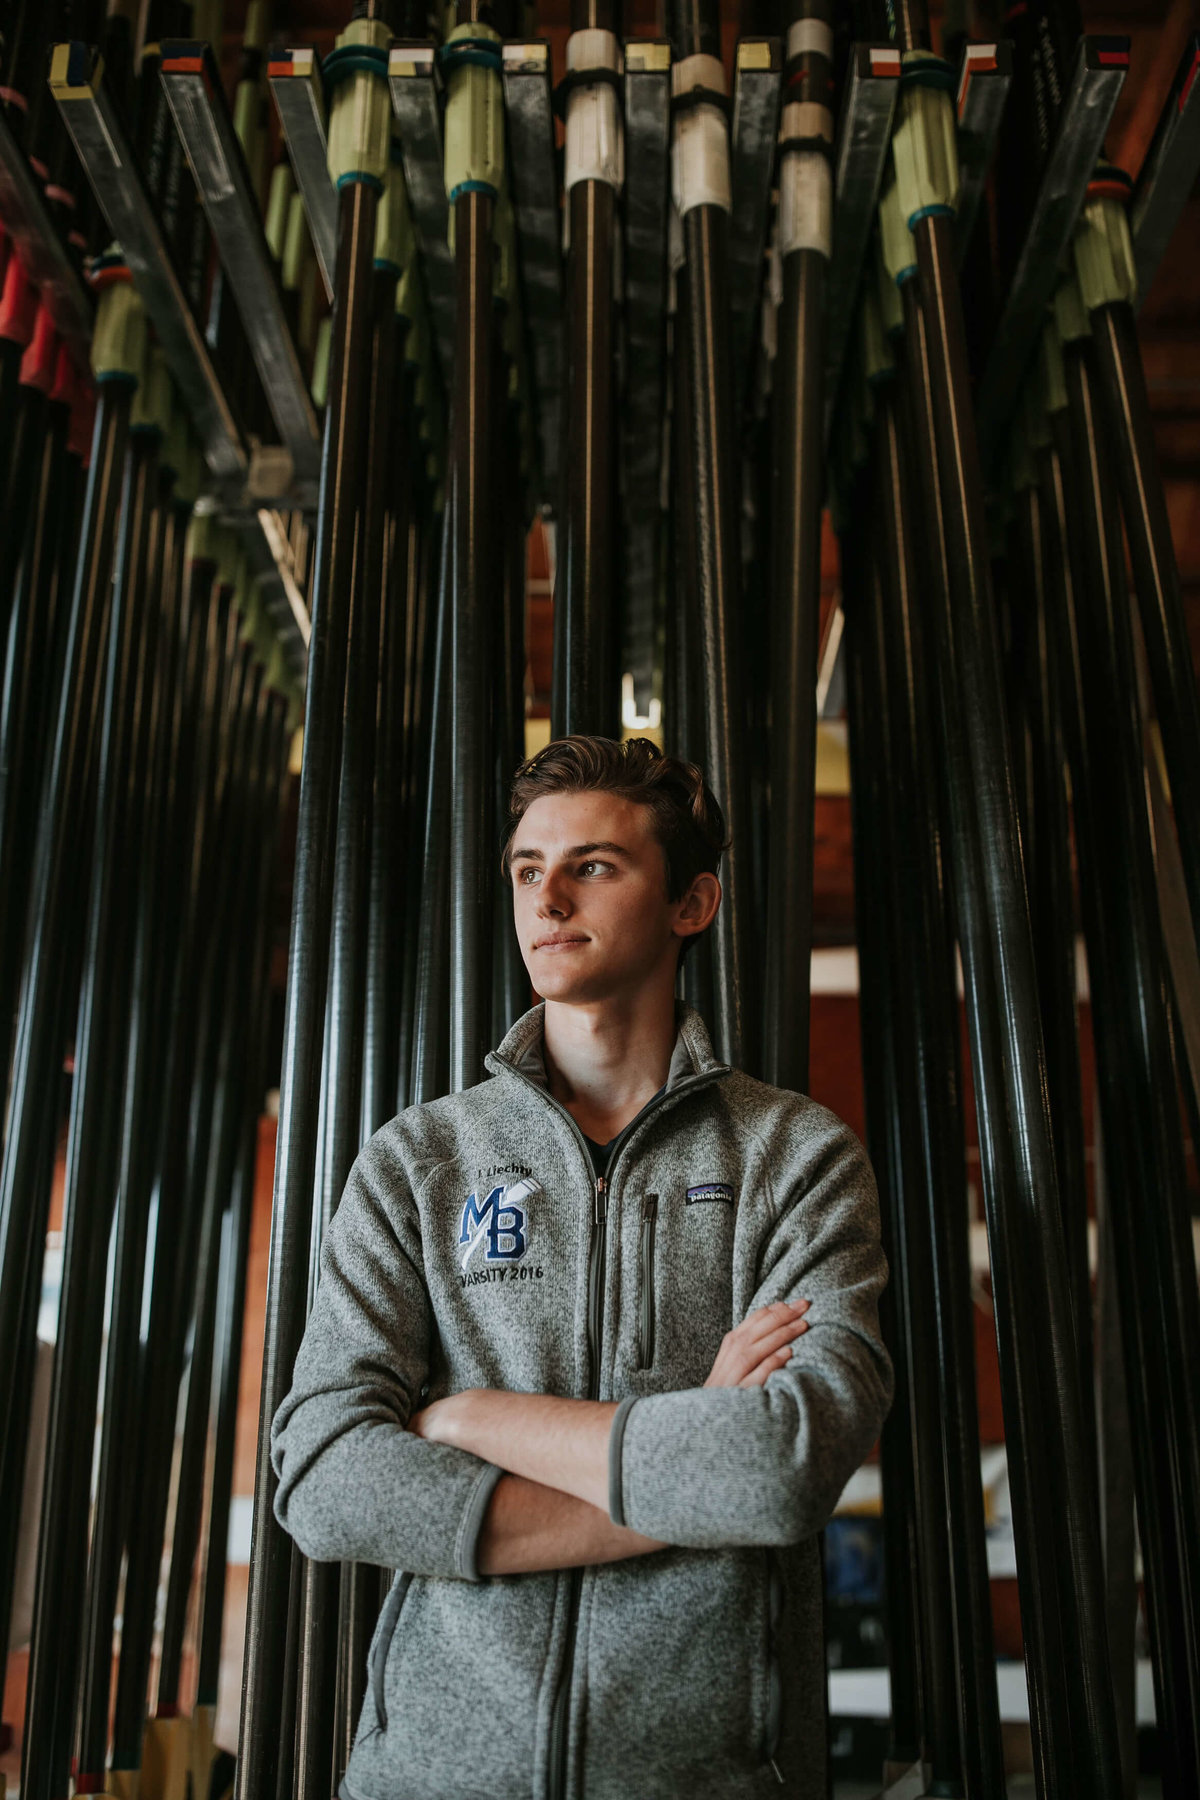 Jared-Liechty-seattle-senior-photos-seattle-rowing-club-2018-APW-H29